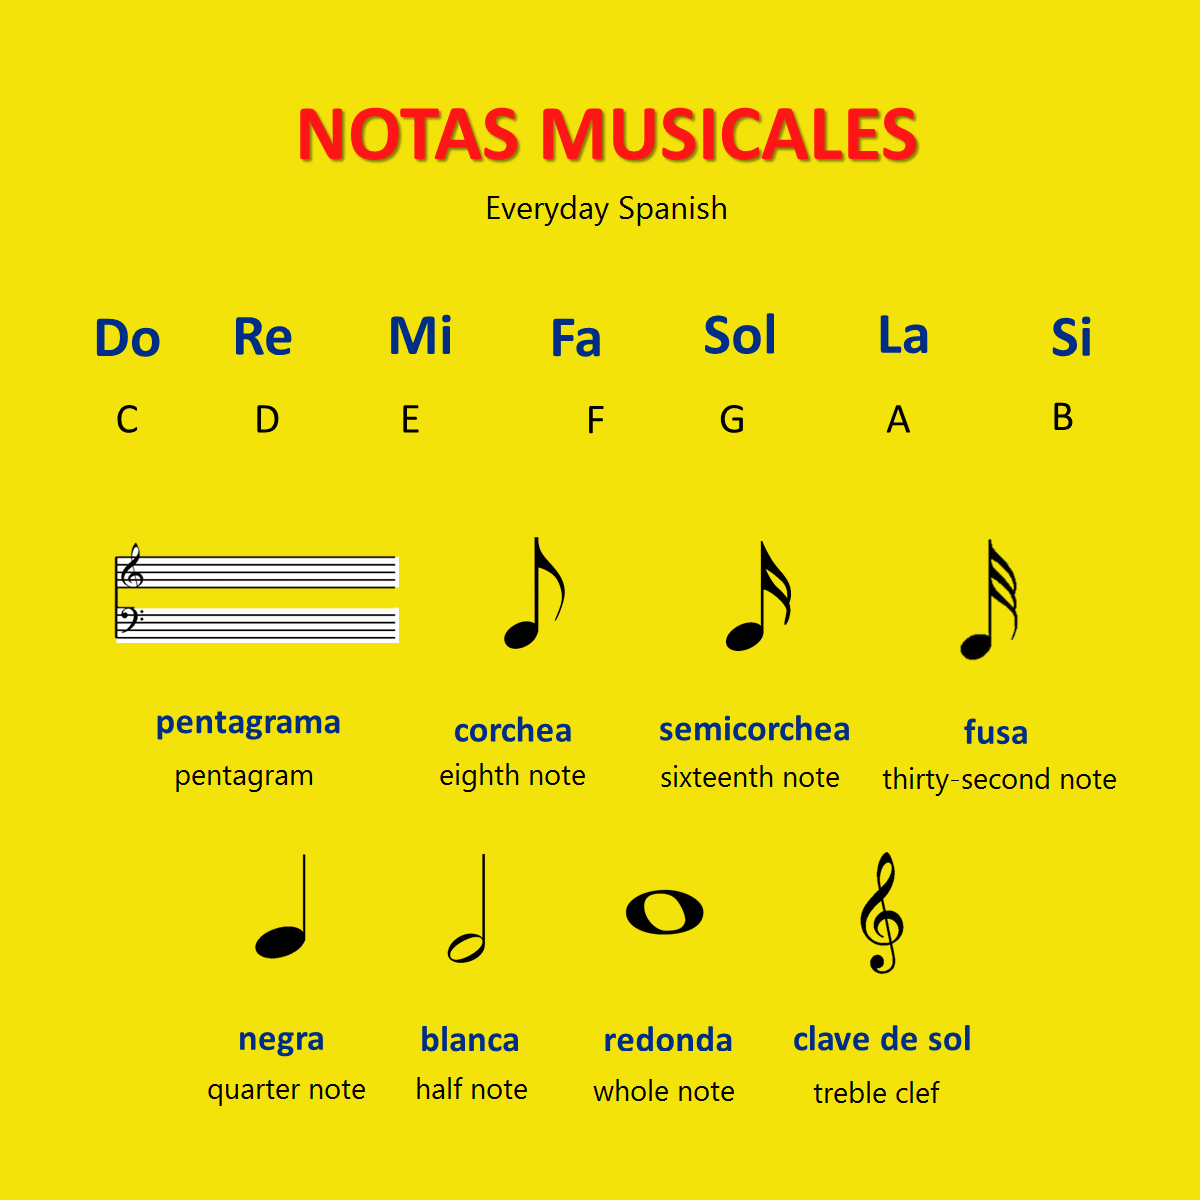 Music Notes In Spanish Spanish Notes Music Words Music Notes